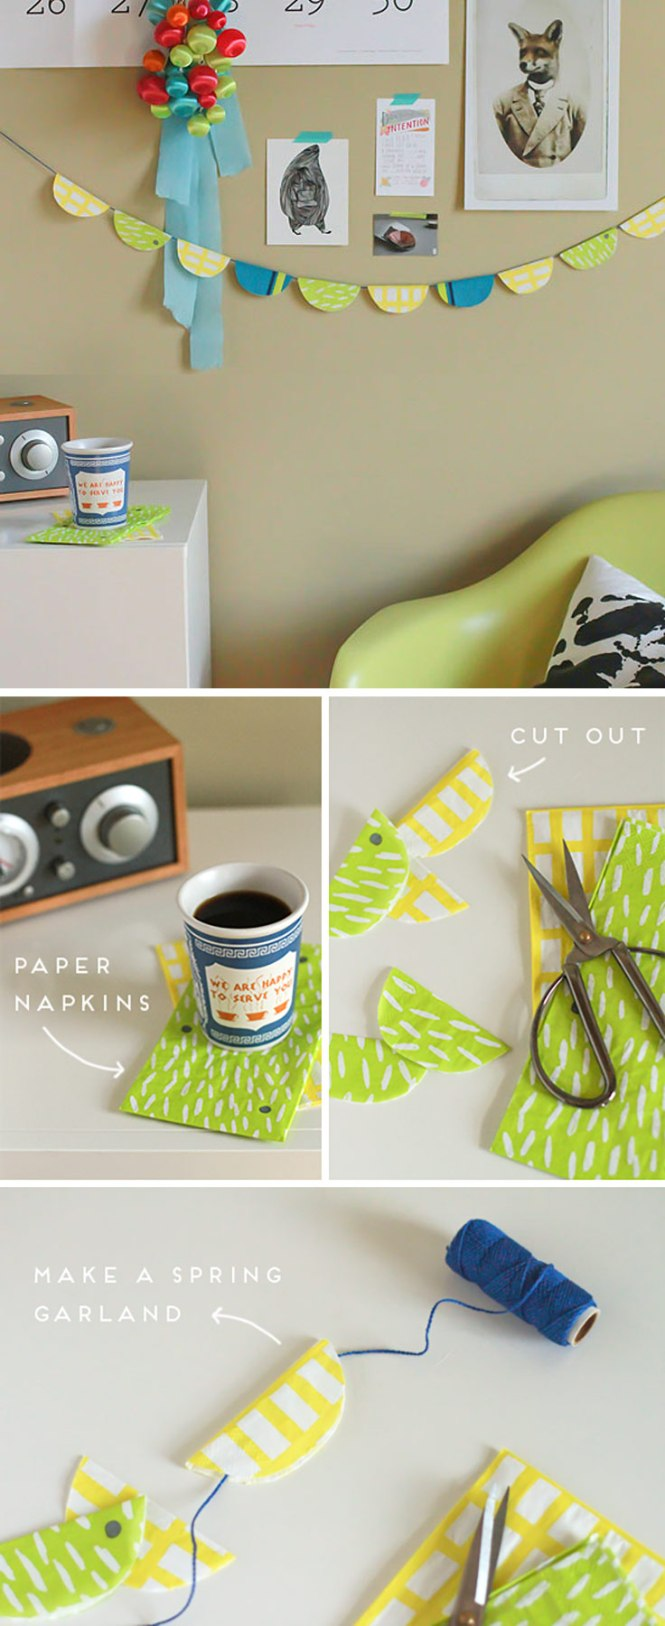 Cute Diy Room Decor Ideas For S Bedroom Projects Agers Paper Napkin